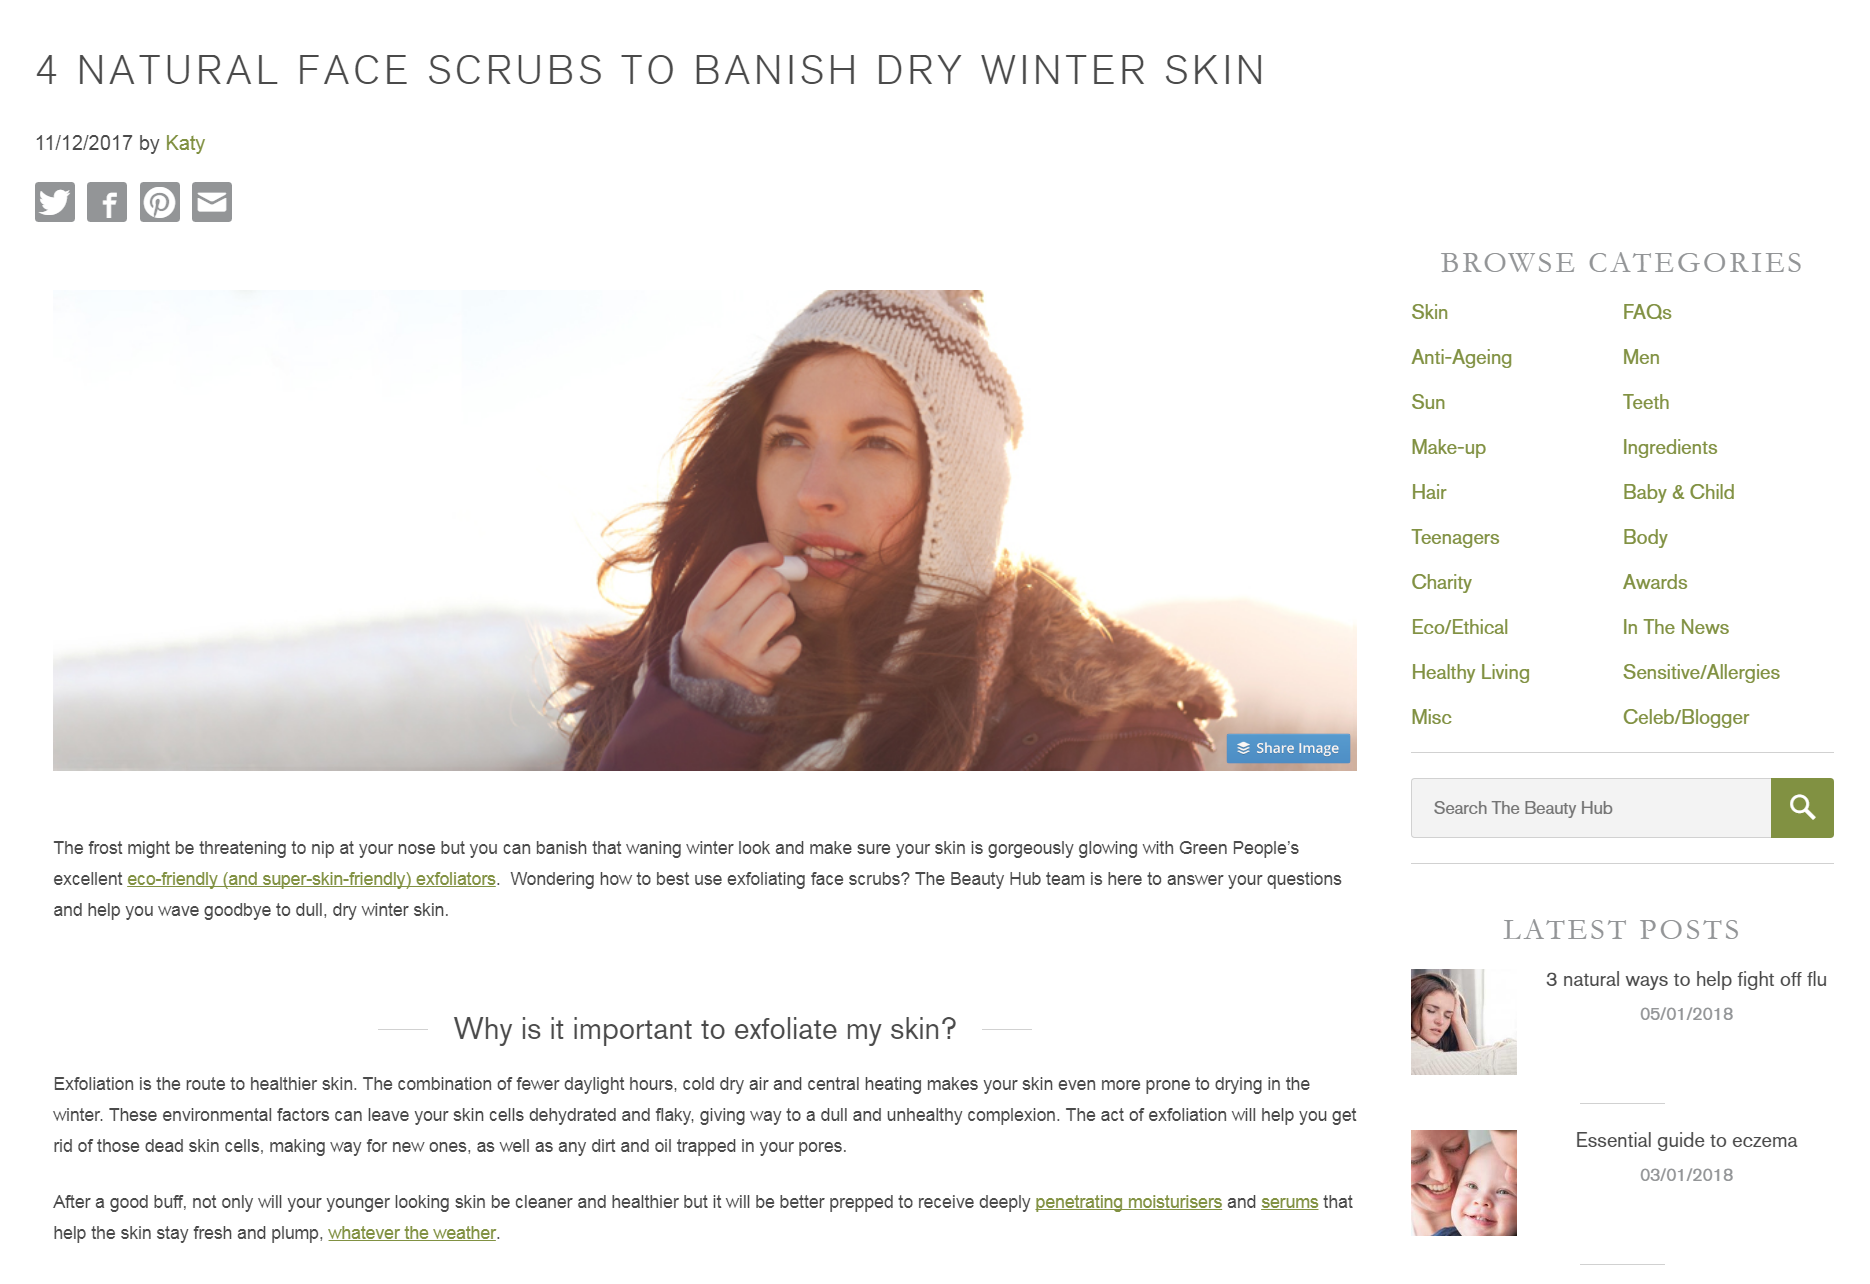 Natural face scrubs to banish dry skin - Green People Beauty Hub blog